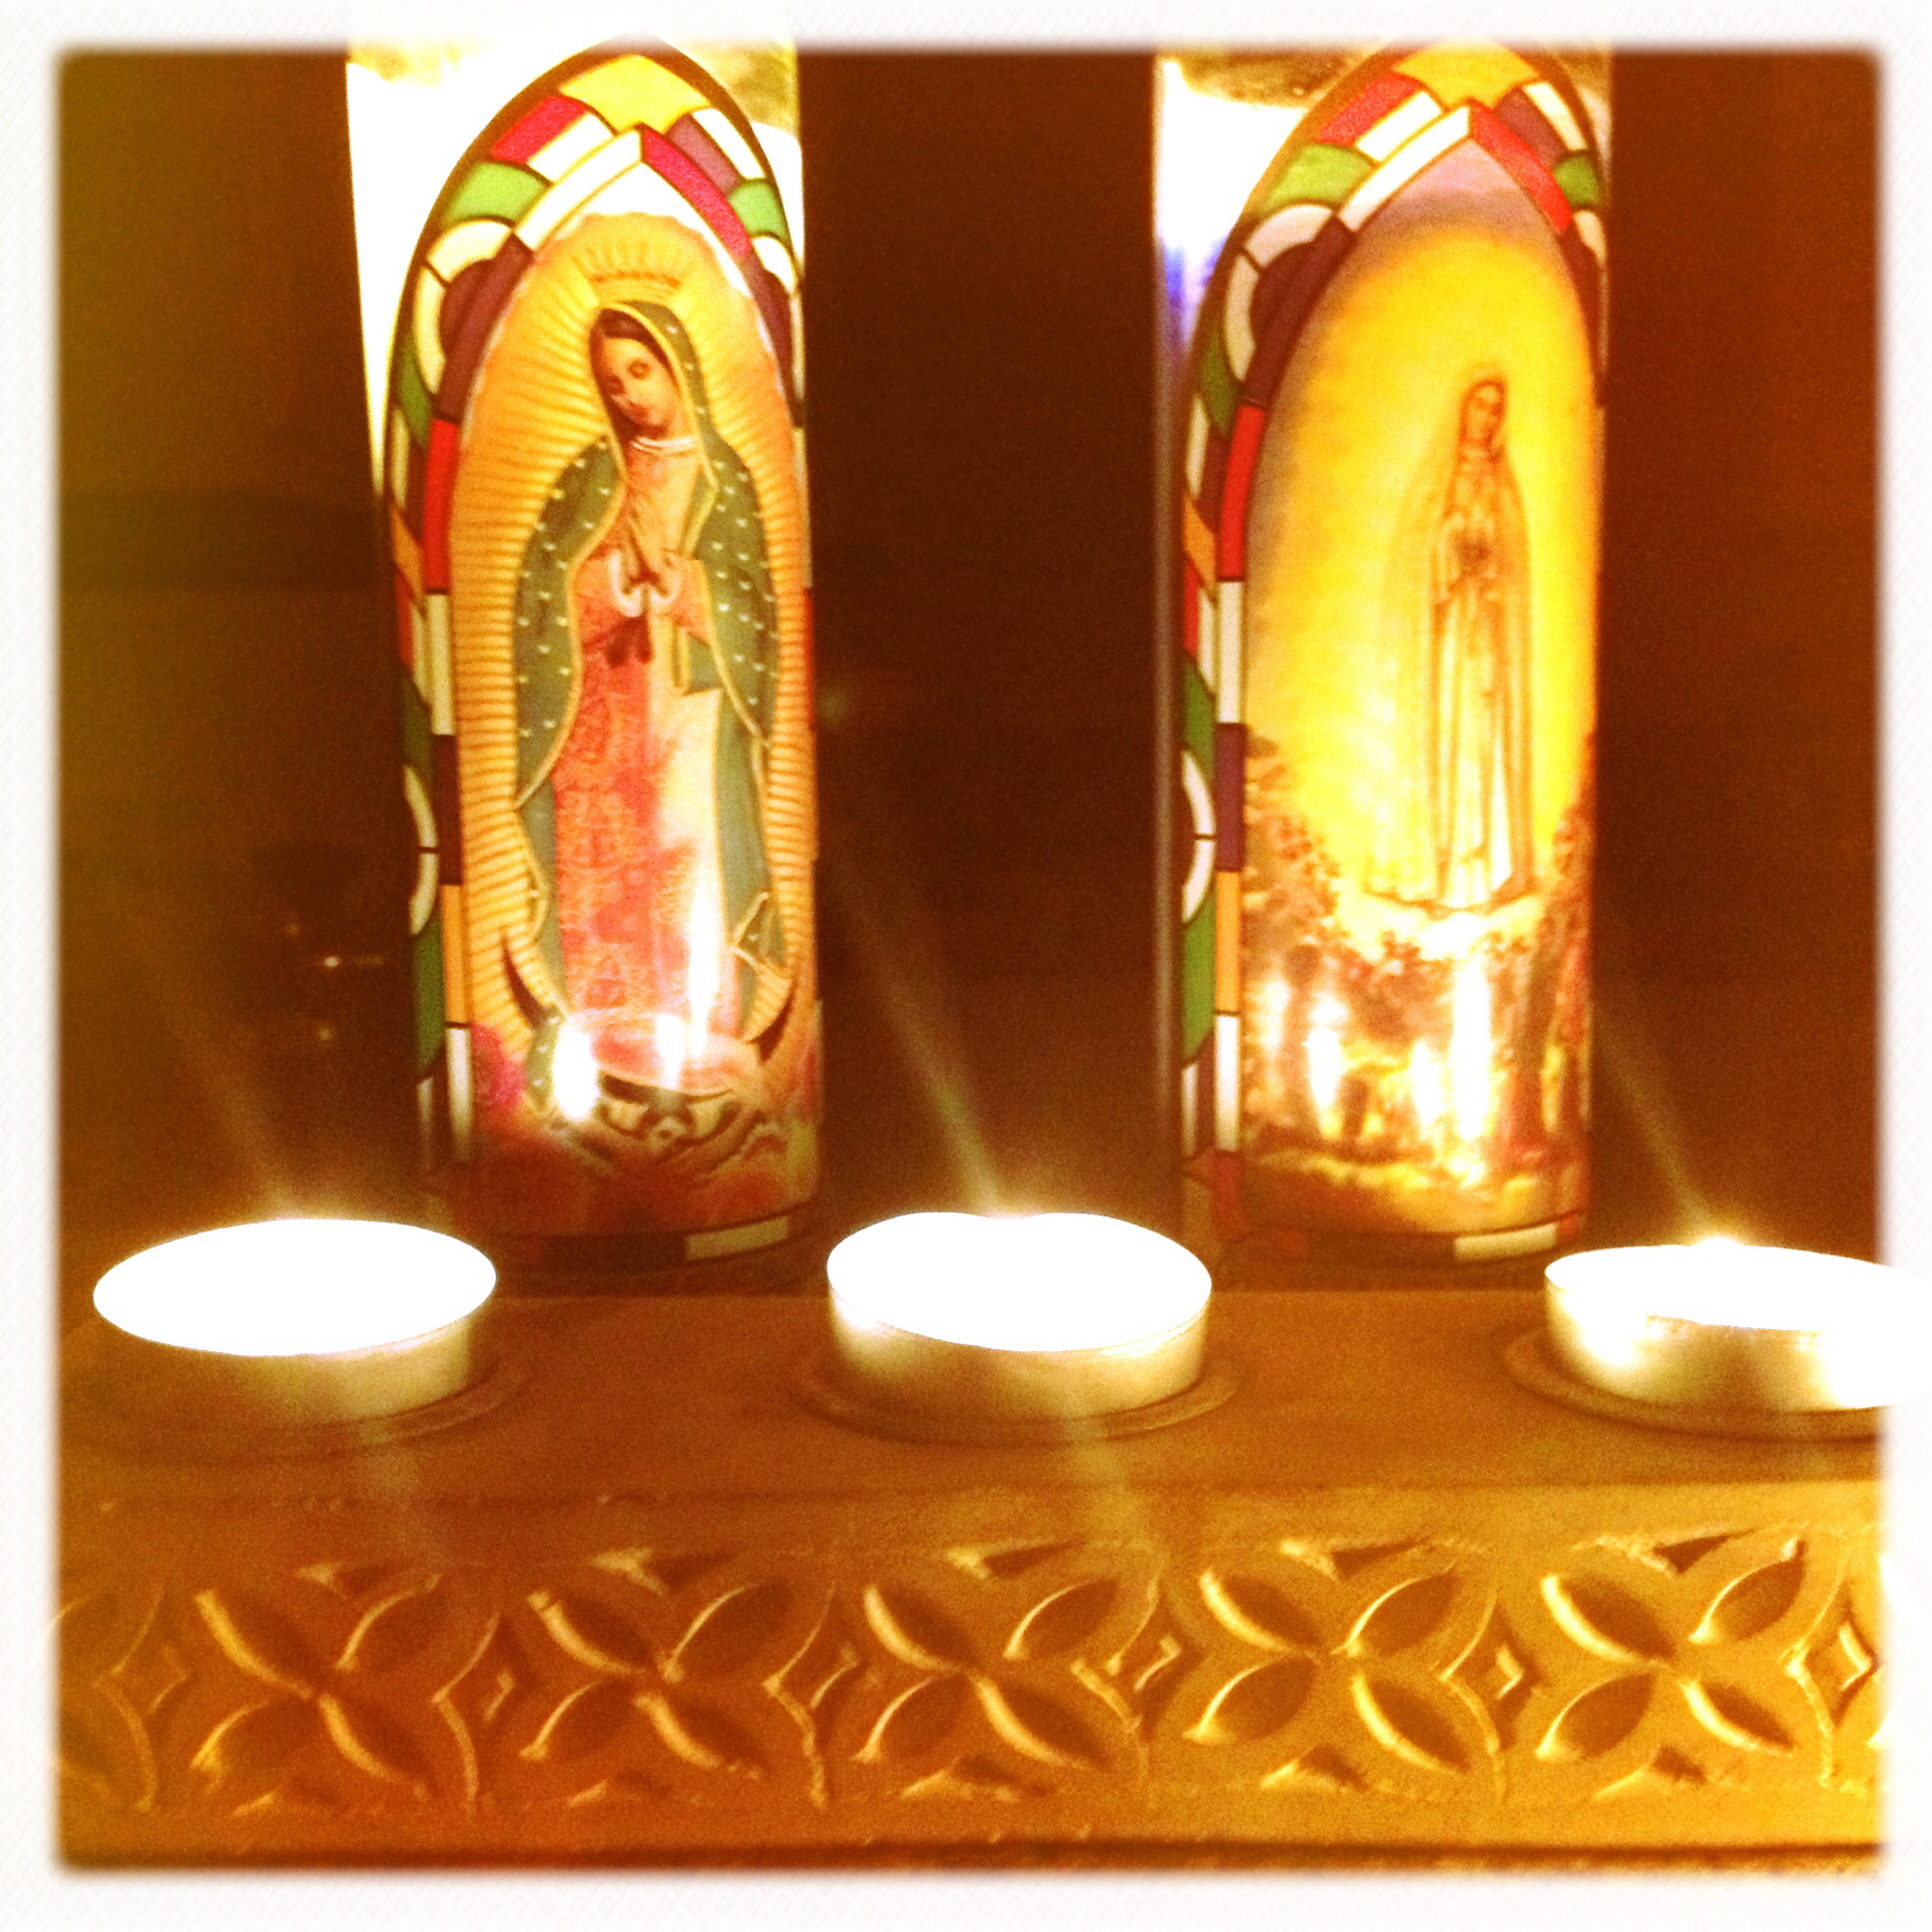 I am not religious but can't resist Catholic candles.